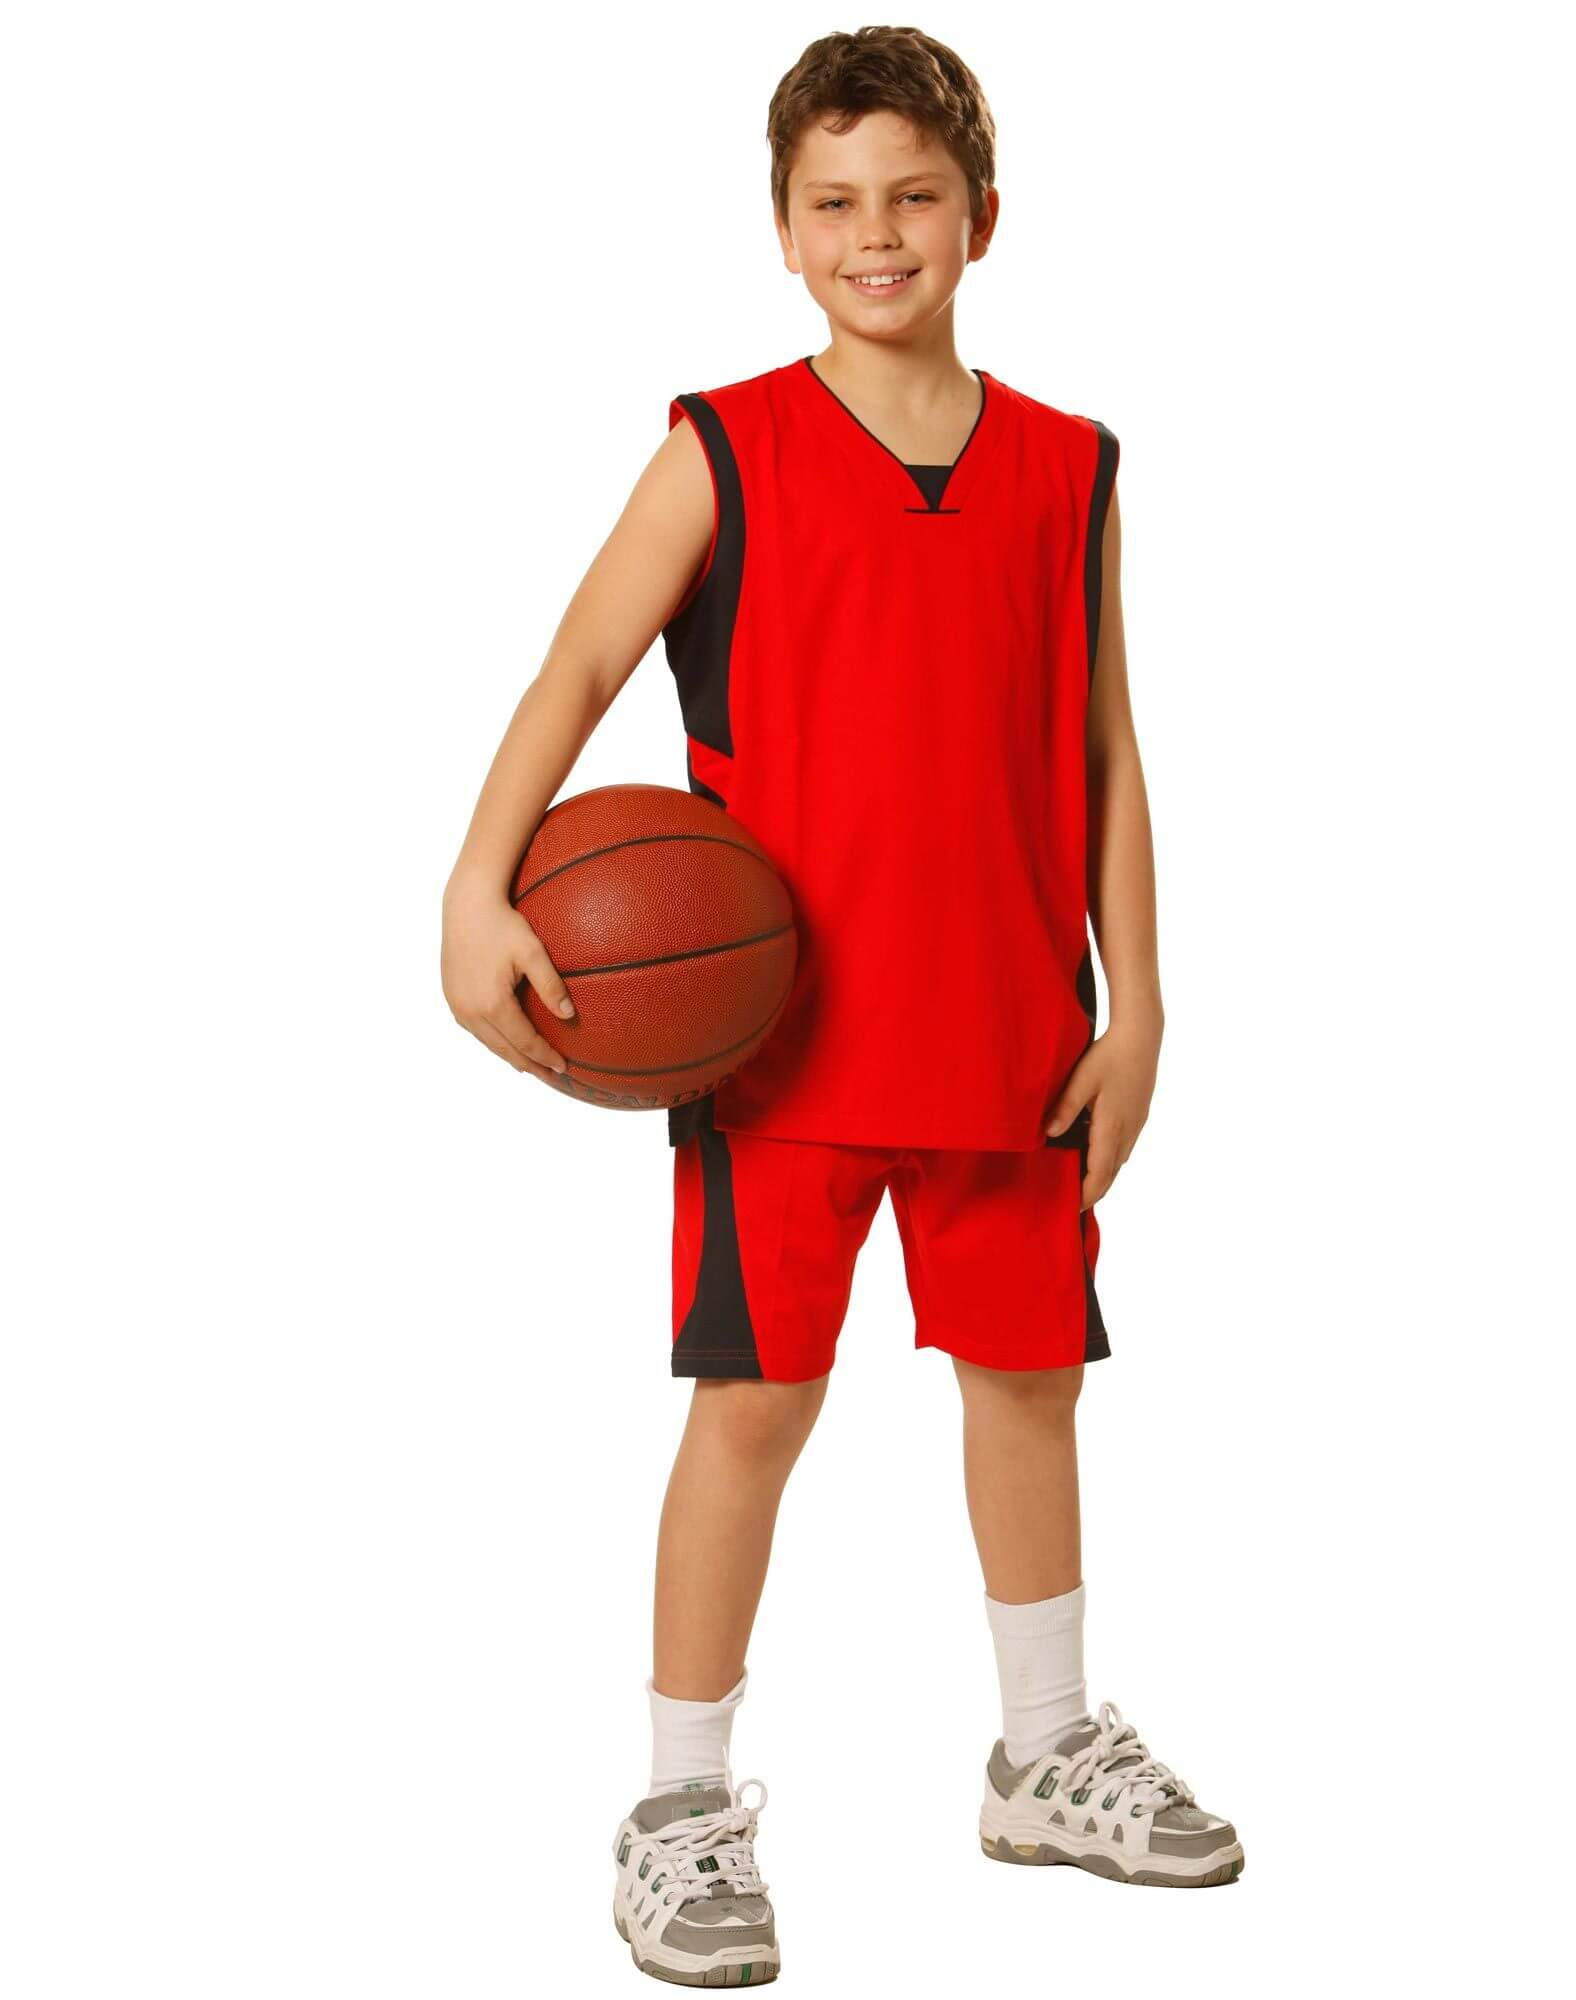 Kids Basketball Manufacturers in Jalandhar in Bahrain